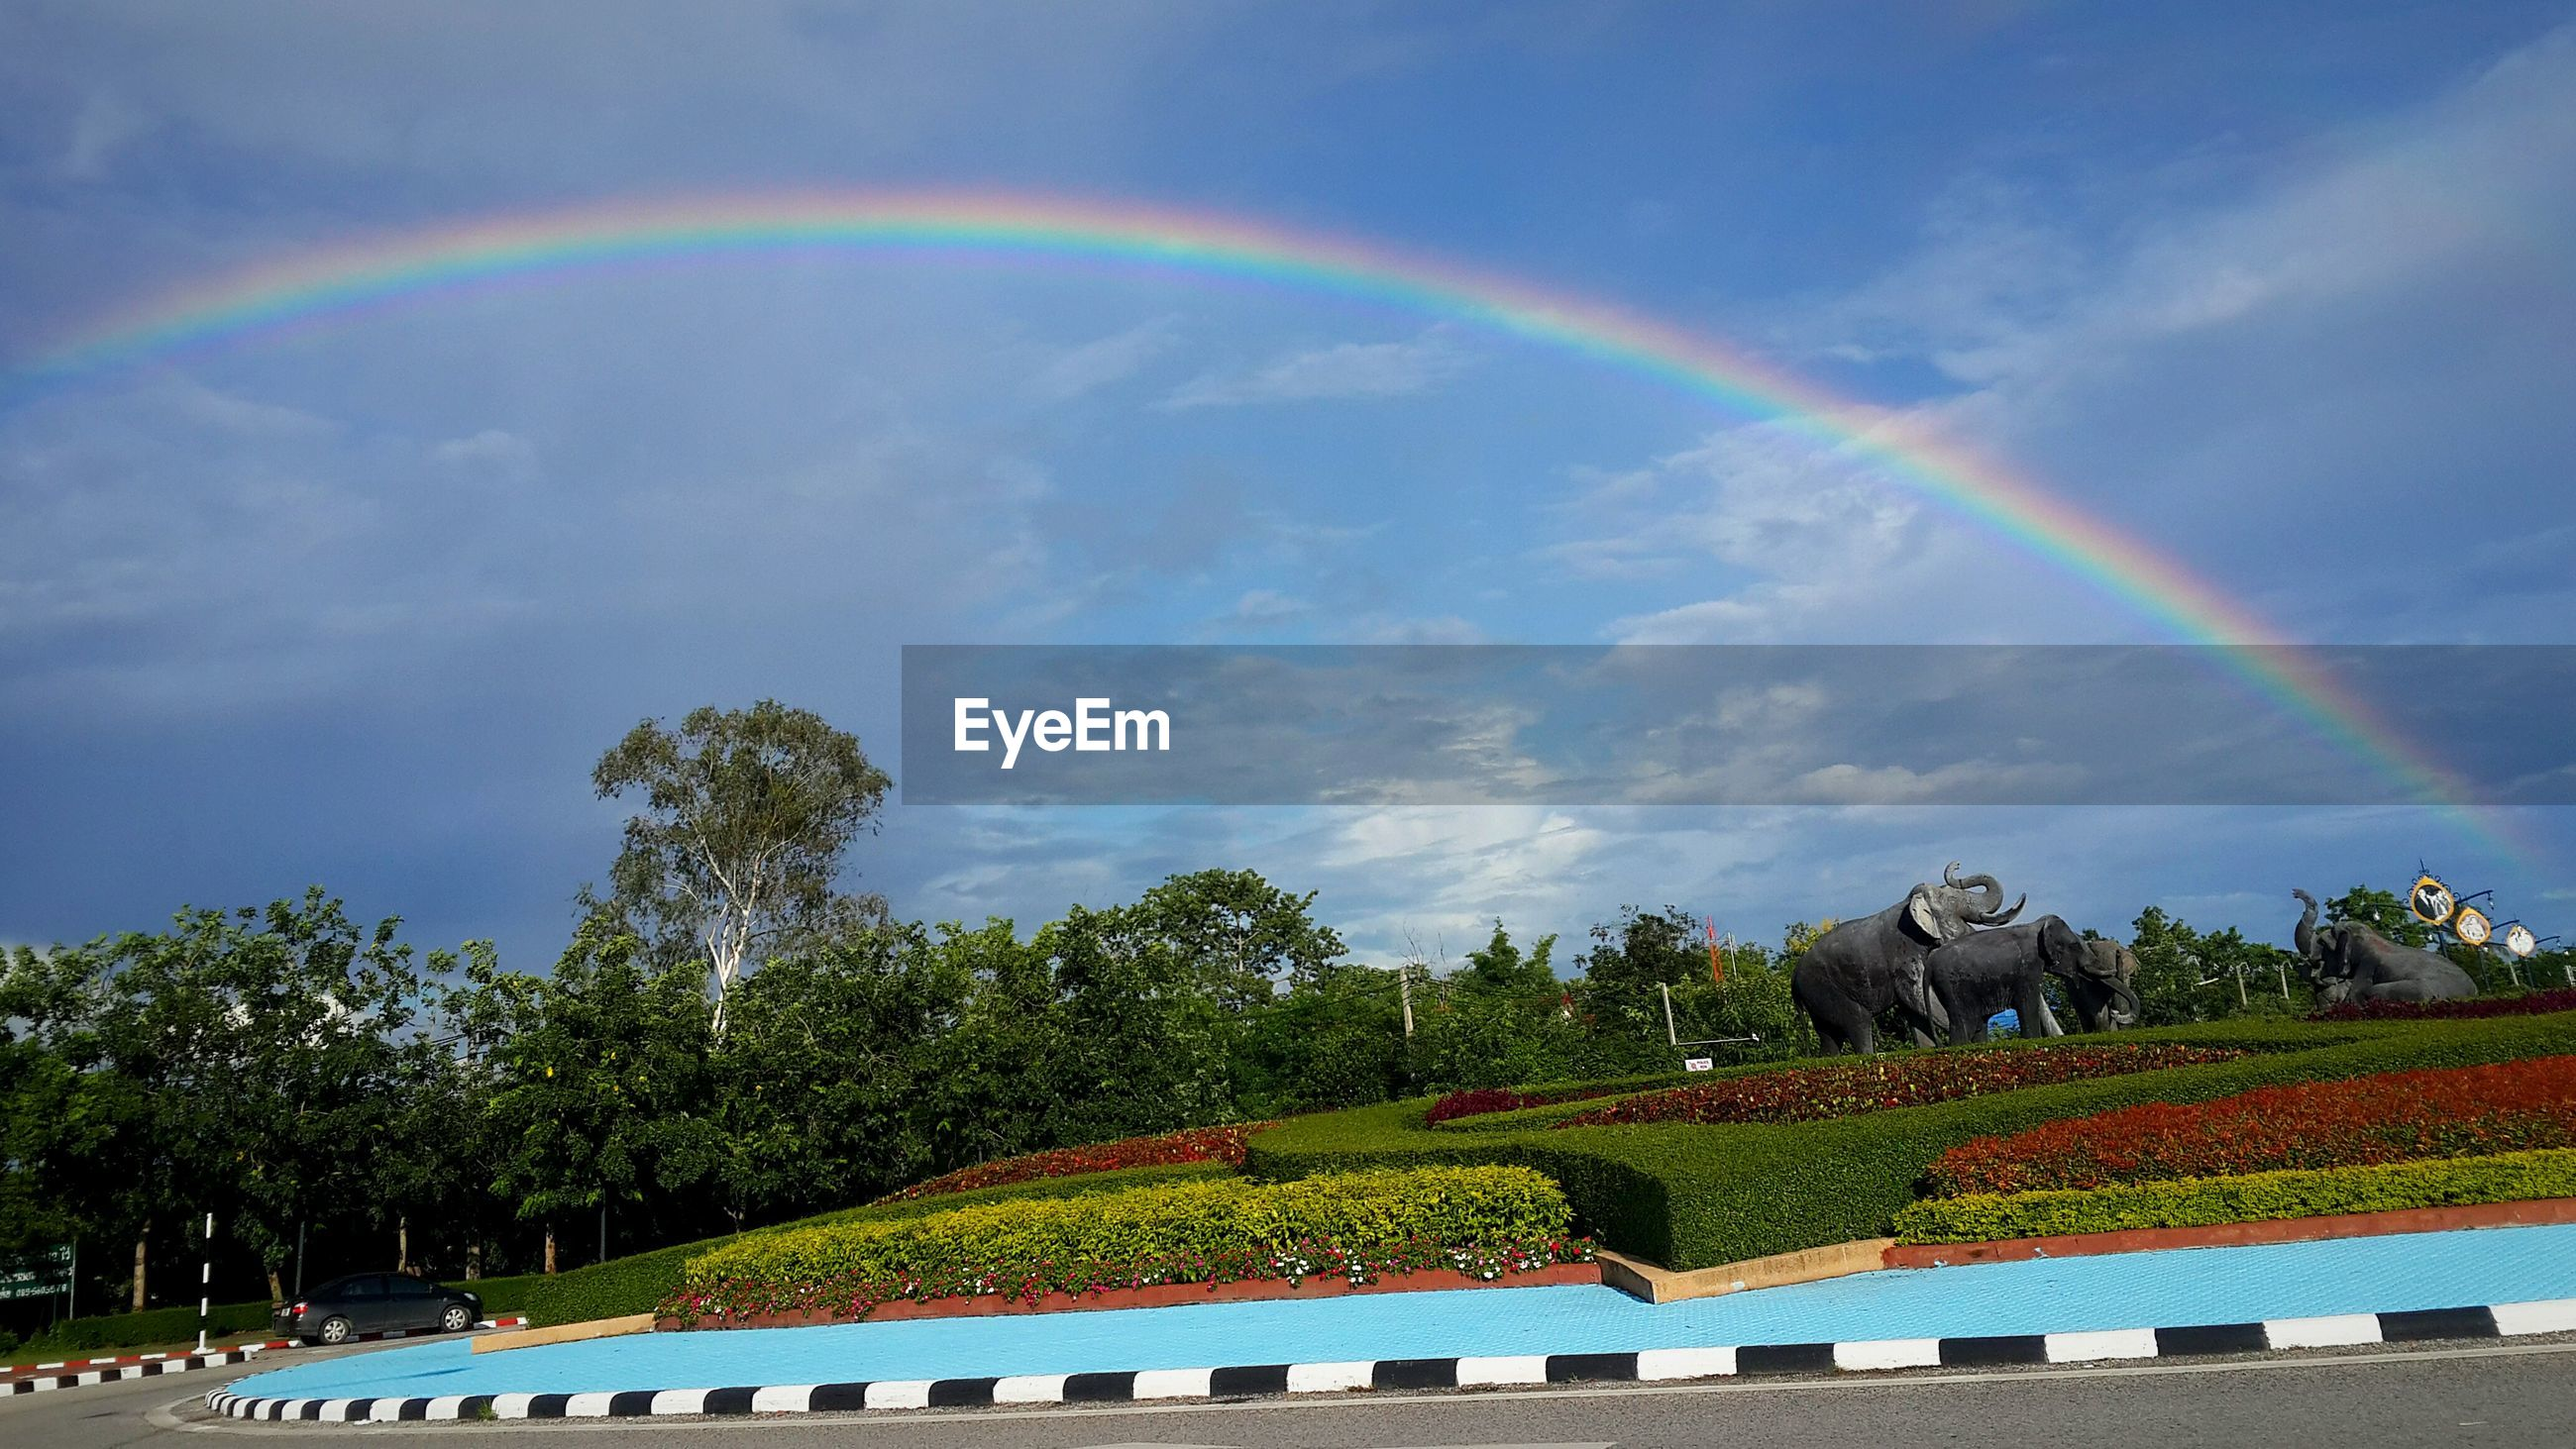 tree, sky, cloud - sky, built structure, rainbow, multi colored, park - man made space, cloud, nature, architecture, incidental people, beauty in nature, building exterior, cloudy, scenics, growth, green color, tranquility, large group of people, outdoors